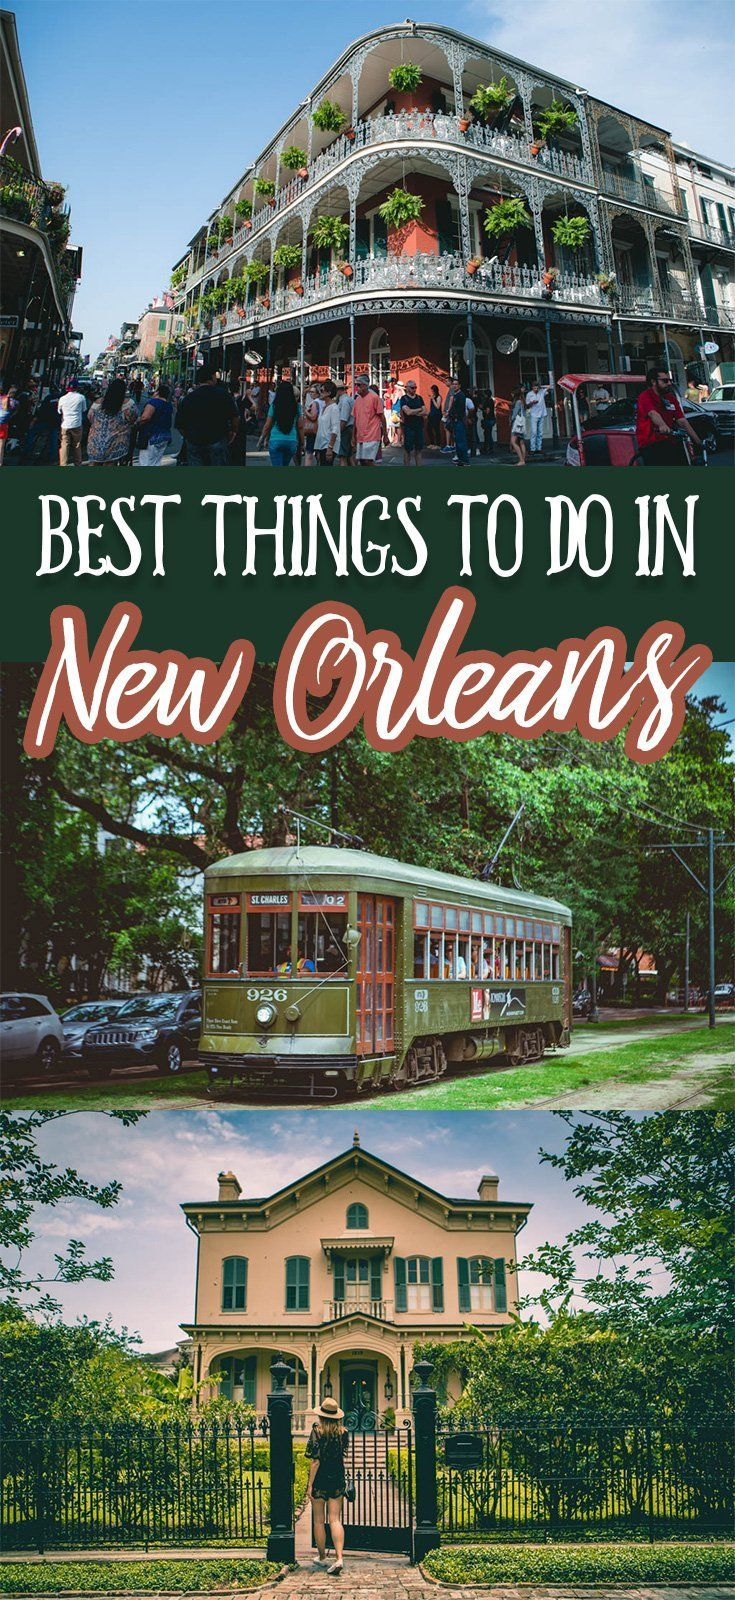 Best things to do in New Orleans one of the most unique cities in the US